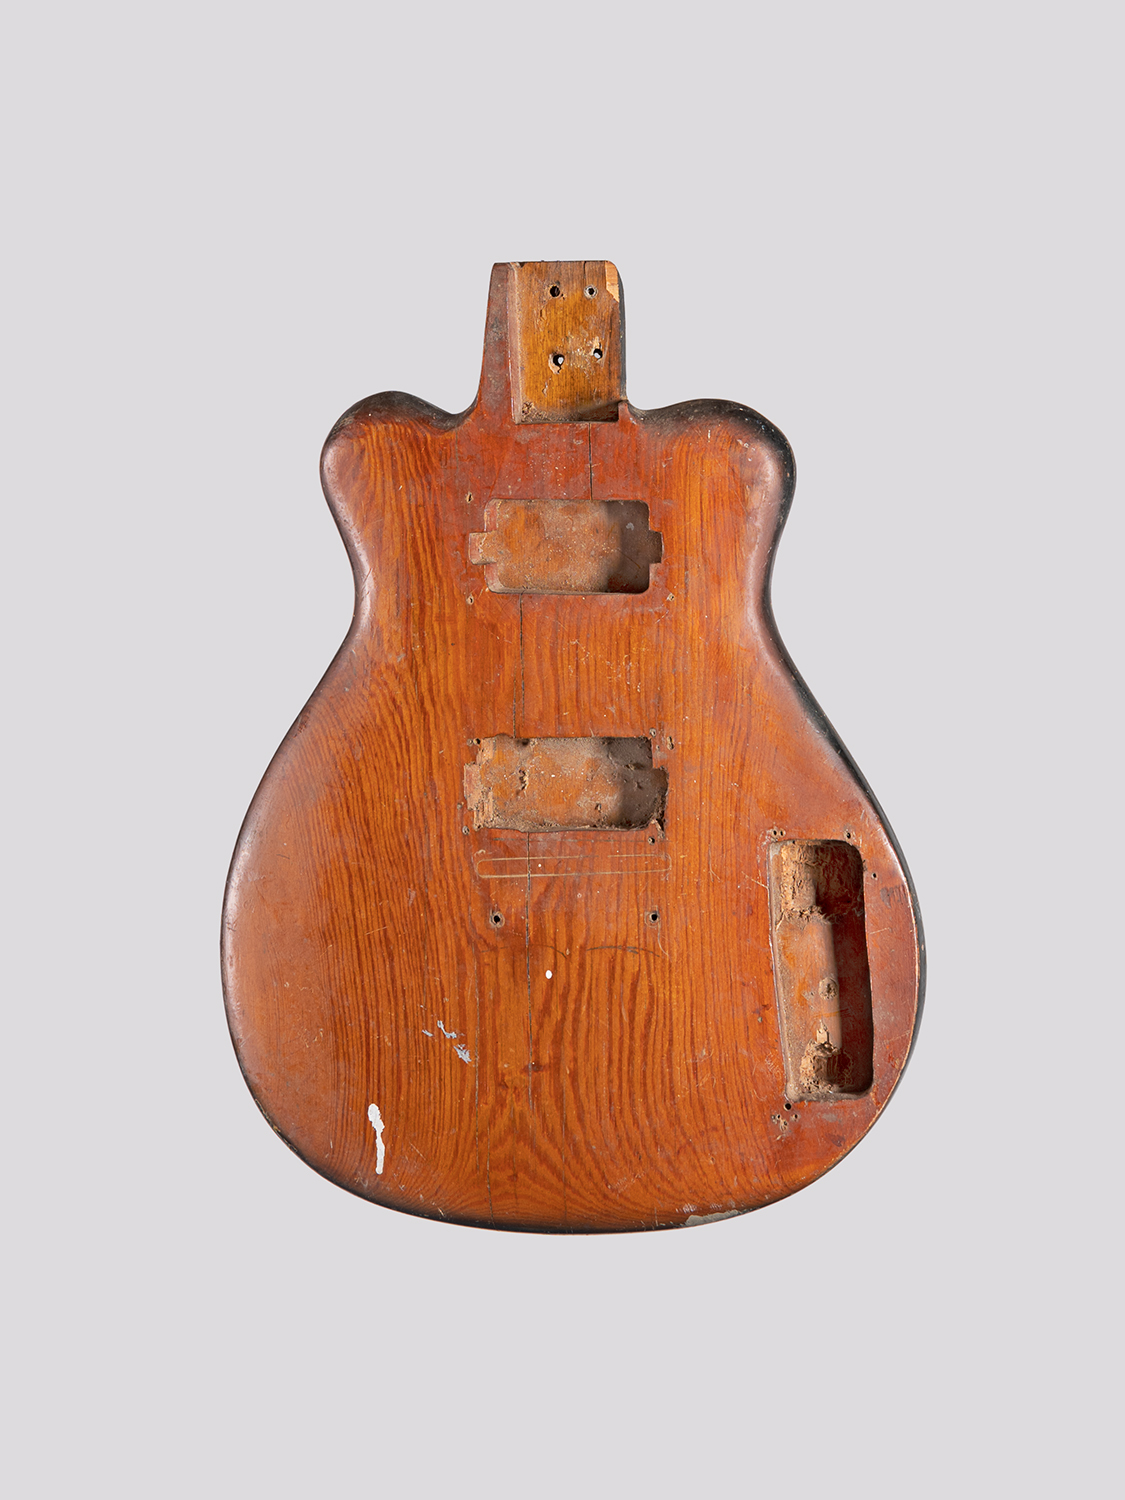 Logging Tree Guitar, 1965